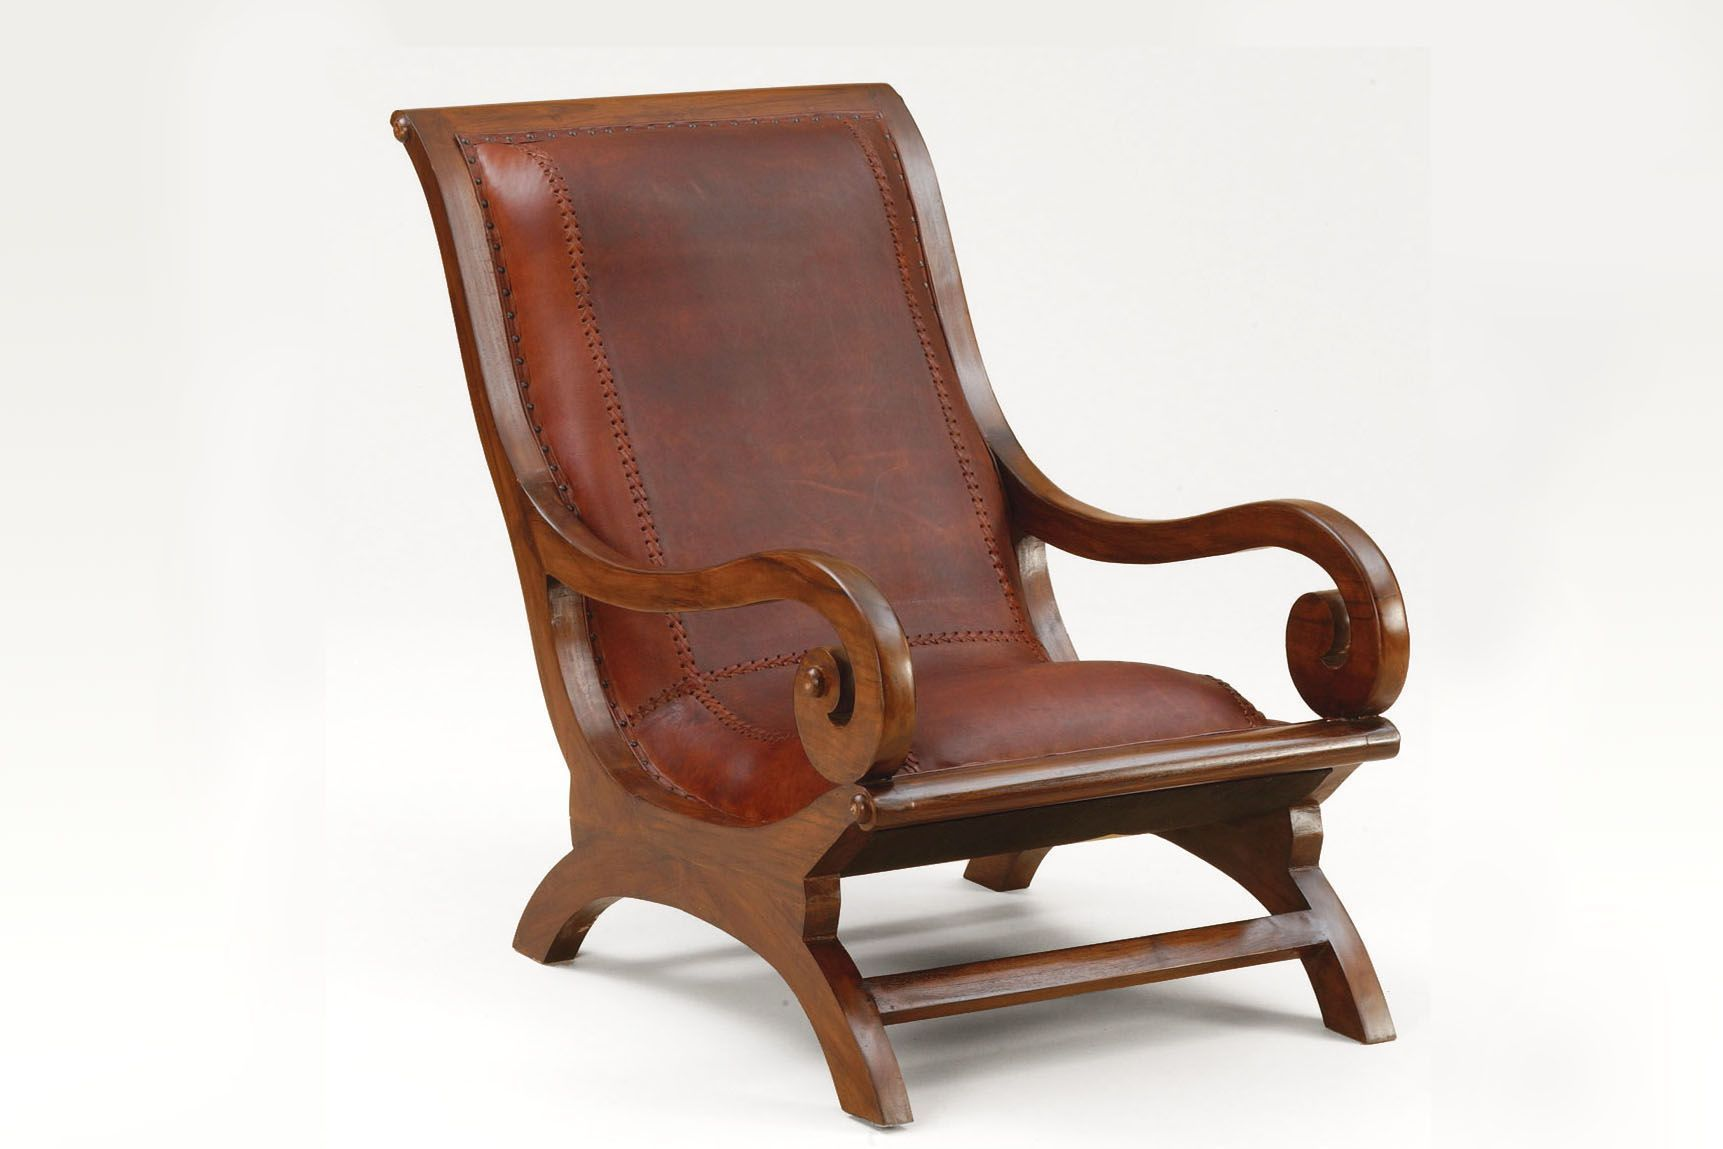 Regency lazy chair leather Upholstery trends, Modern